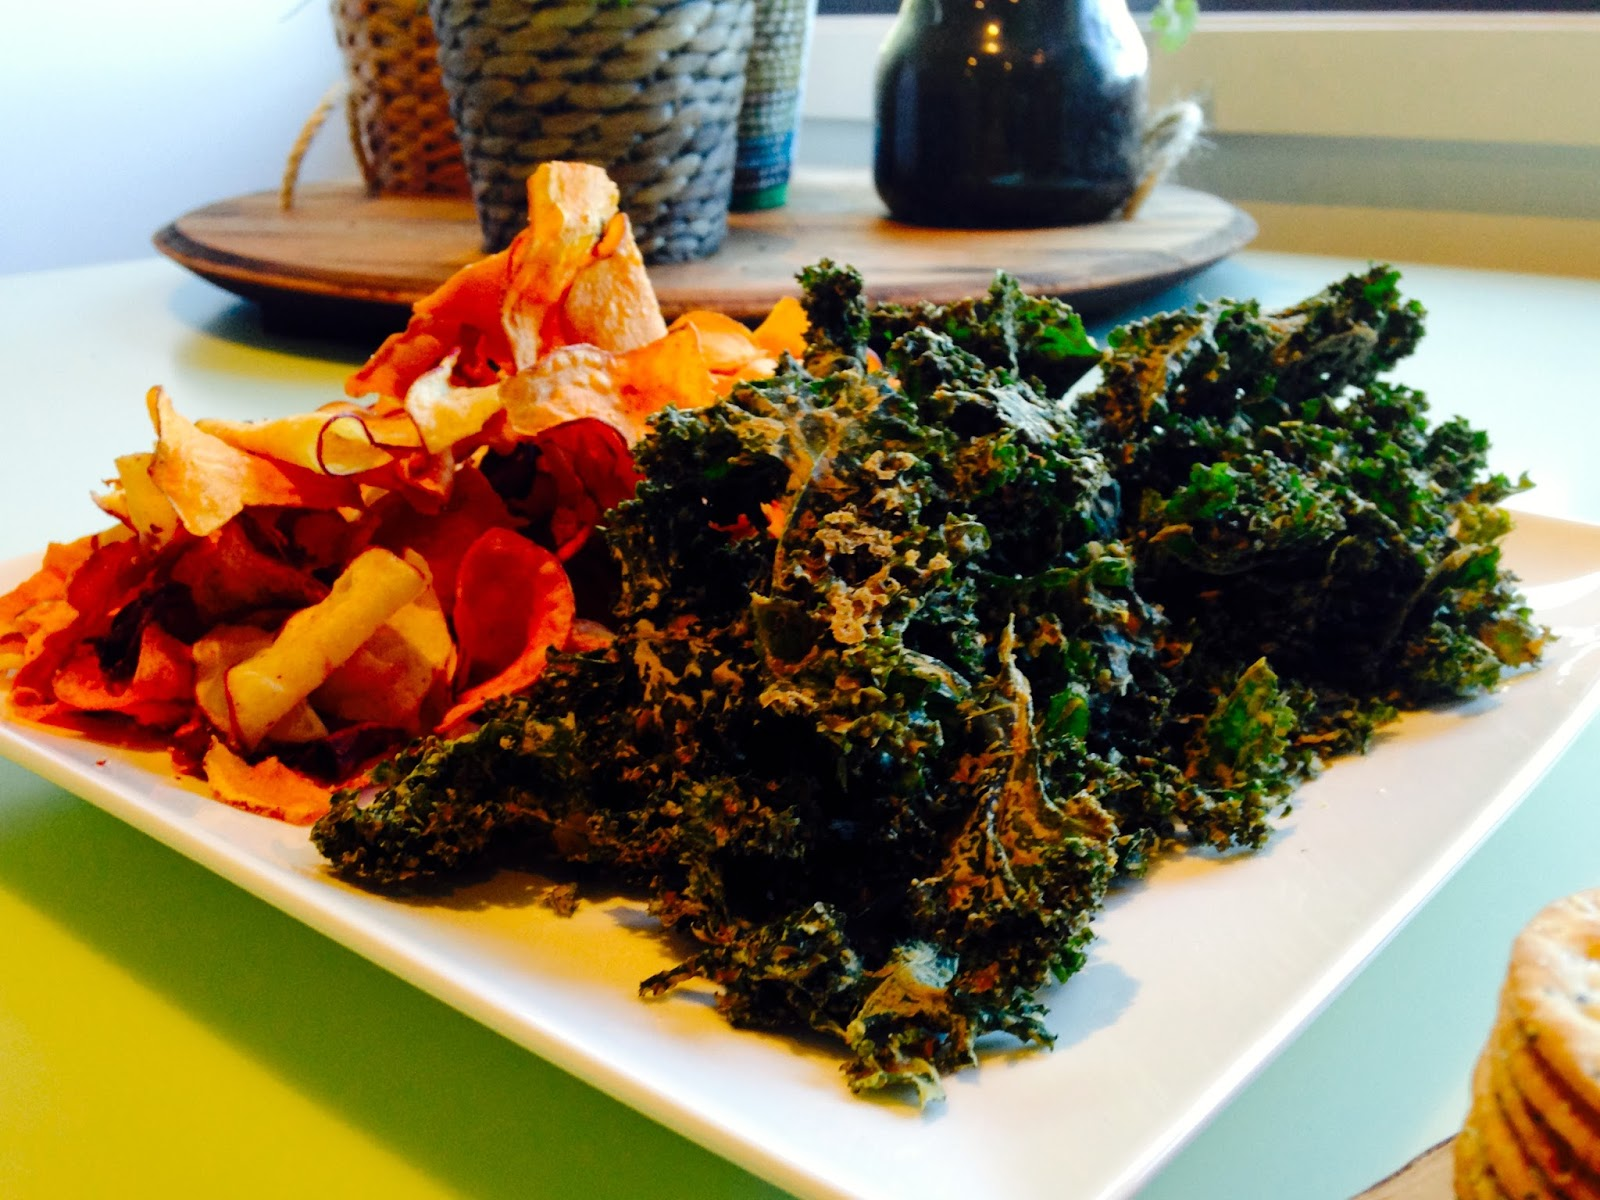 Veggie chips and homemade kale chips